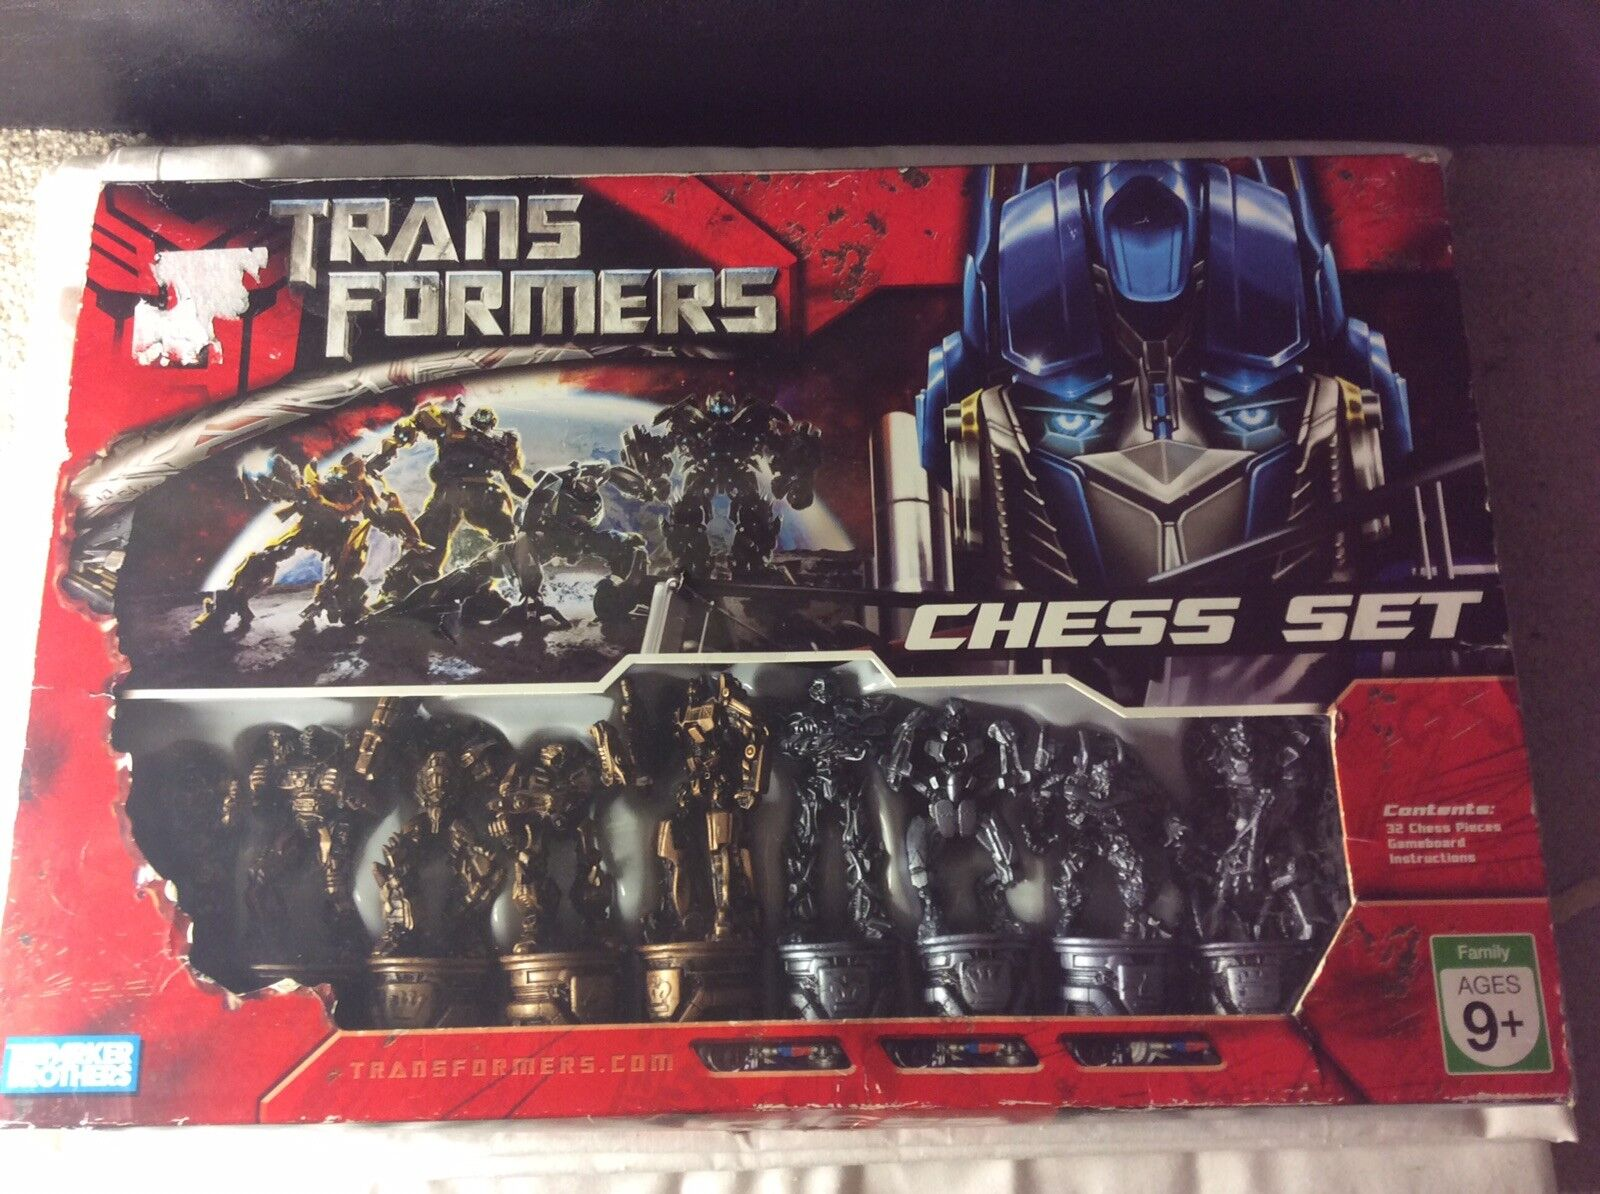 Collectable Transformers Chess Set 100% Complete Hasbro 2007